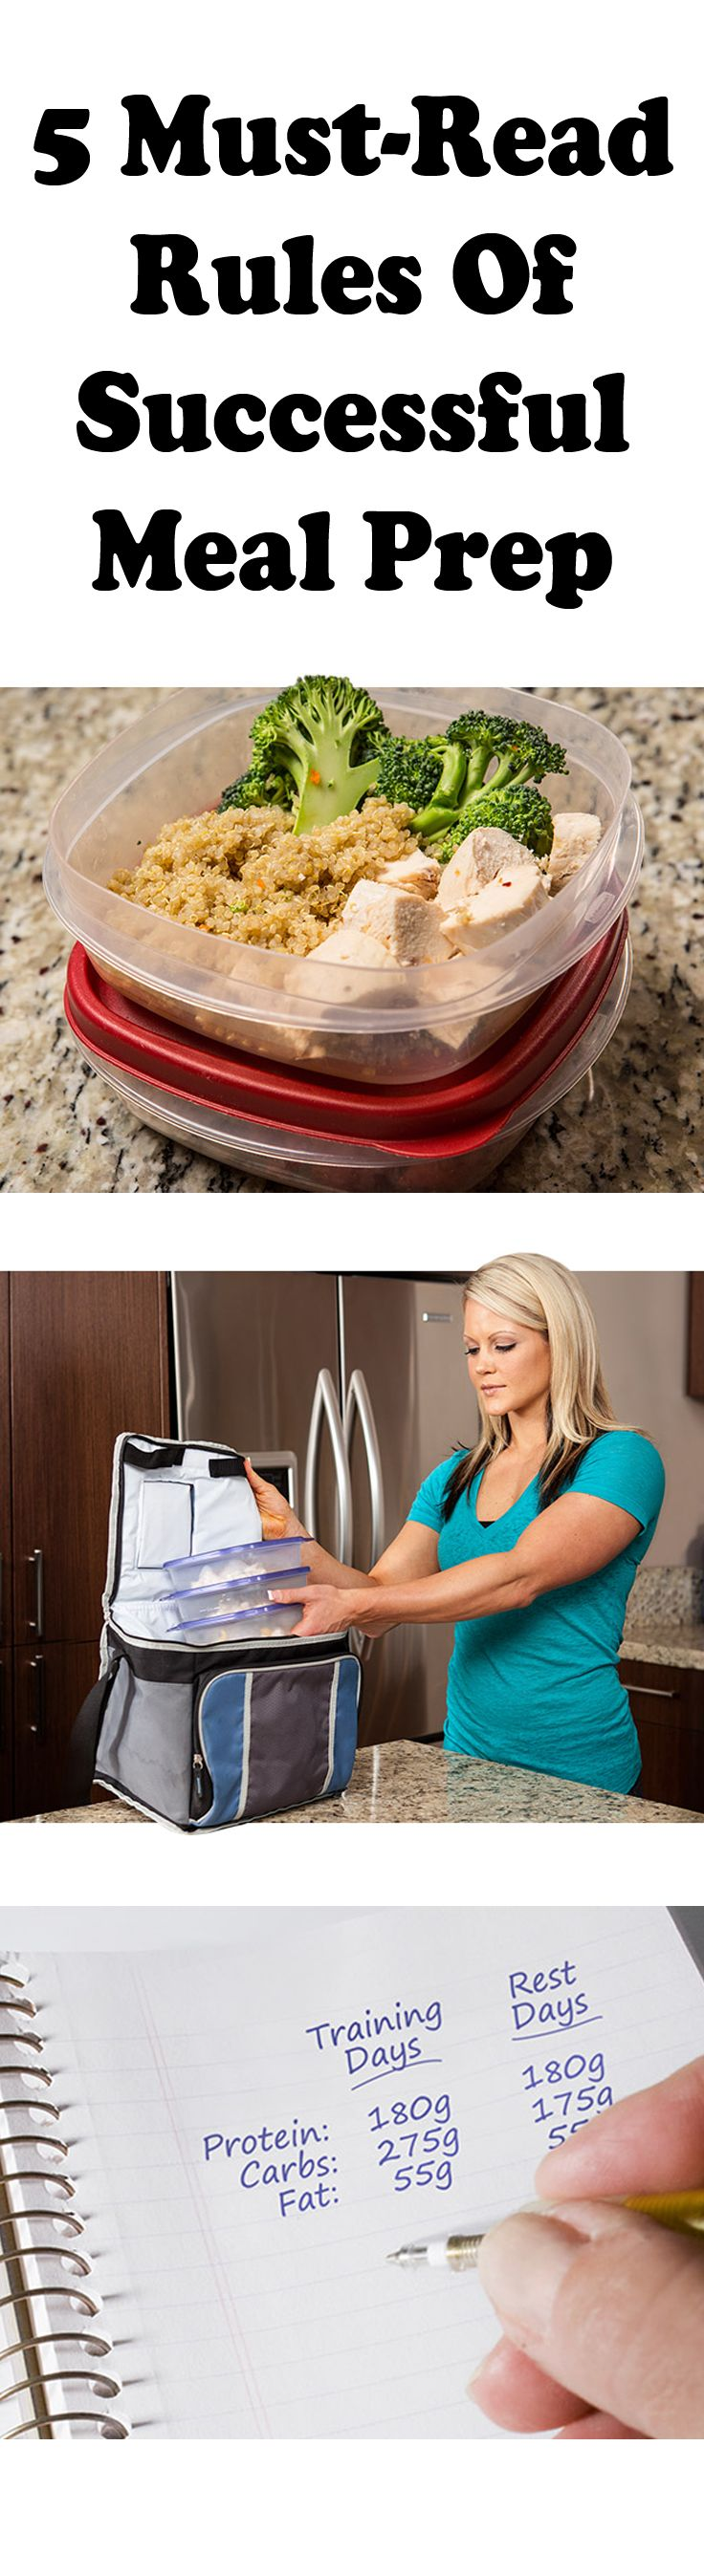 Meal prep doesn't have to be something you dread. Rather than making last minute grocery trips and guessing about the numbers, follow these 5 simple rules of successful meal prep!